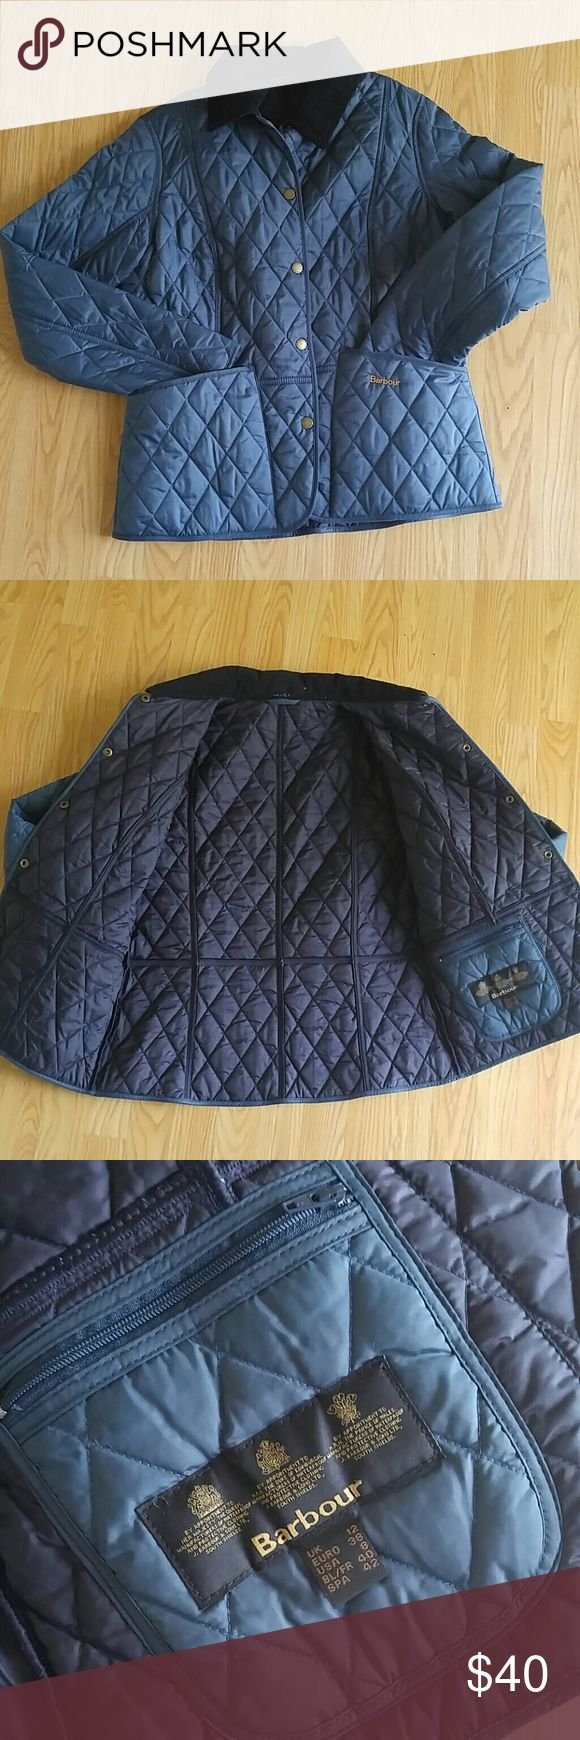 Barbour Blue Quilted Jacket Corduroy Collar Classic and stylish blue Barbour quilted jacket. Blue with brass snaps, black corduroy collar. Front pockets, inner zip pocket. New without tags, never worn. Make me an offer or bundle to save! Barbour Jackets & Coats